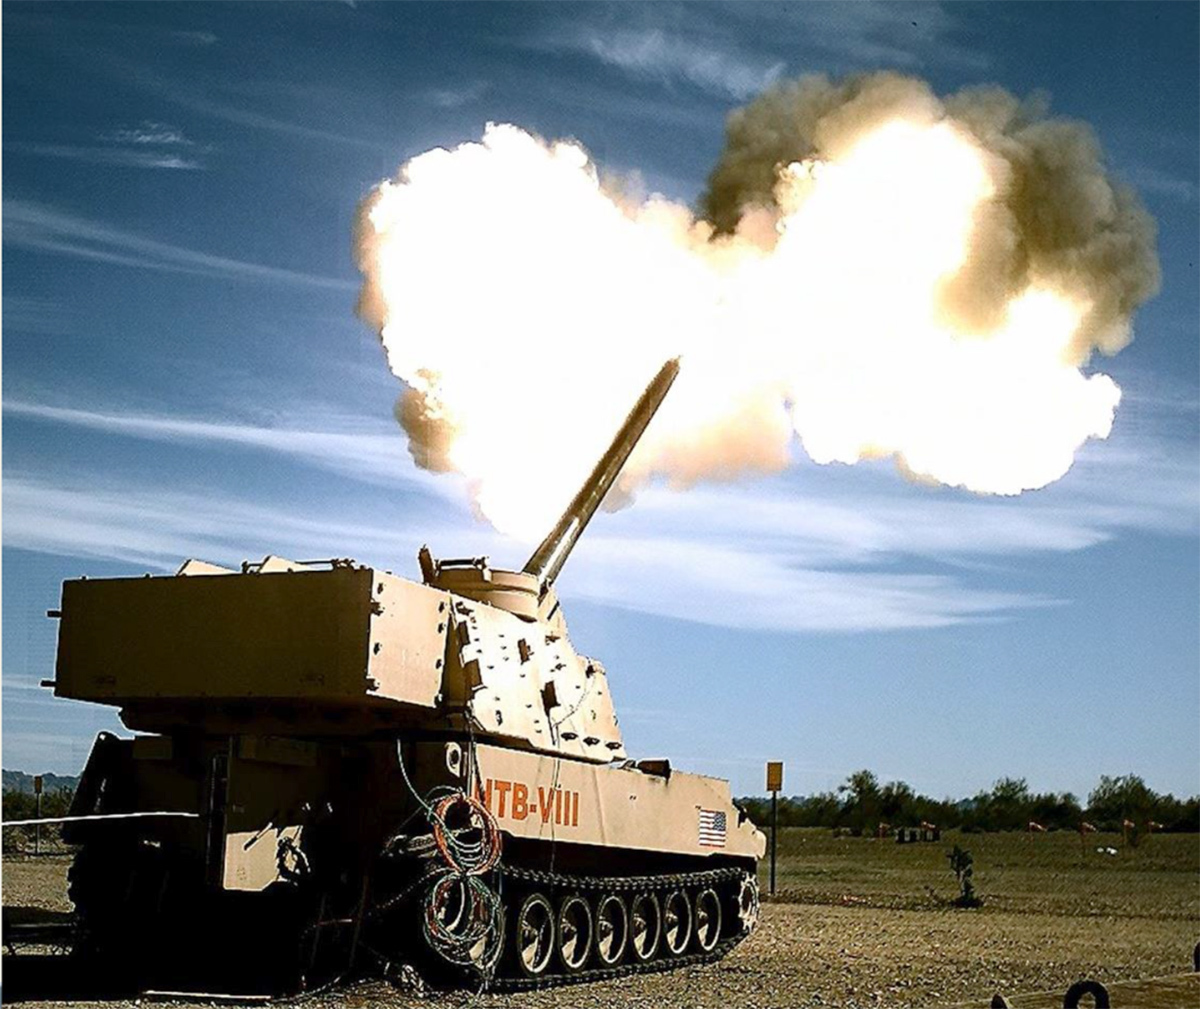 The Army took two shots from its Extended Range Cannon Artillery system, which both reached 65 kilometers in range and hit their intended targets, in a demonstration at Yuma Proving Ground, Ariz., on March 6, 2020. The demo proved the cannon is capable of firing roughly 40 miles. A long-range cannon is intended to give the service a desired level of standoff outside of the range of enemy artillery. (Edward Lopez/U.S. Army)